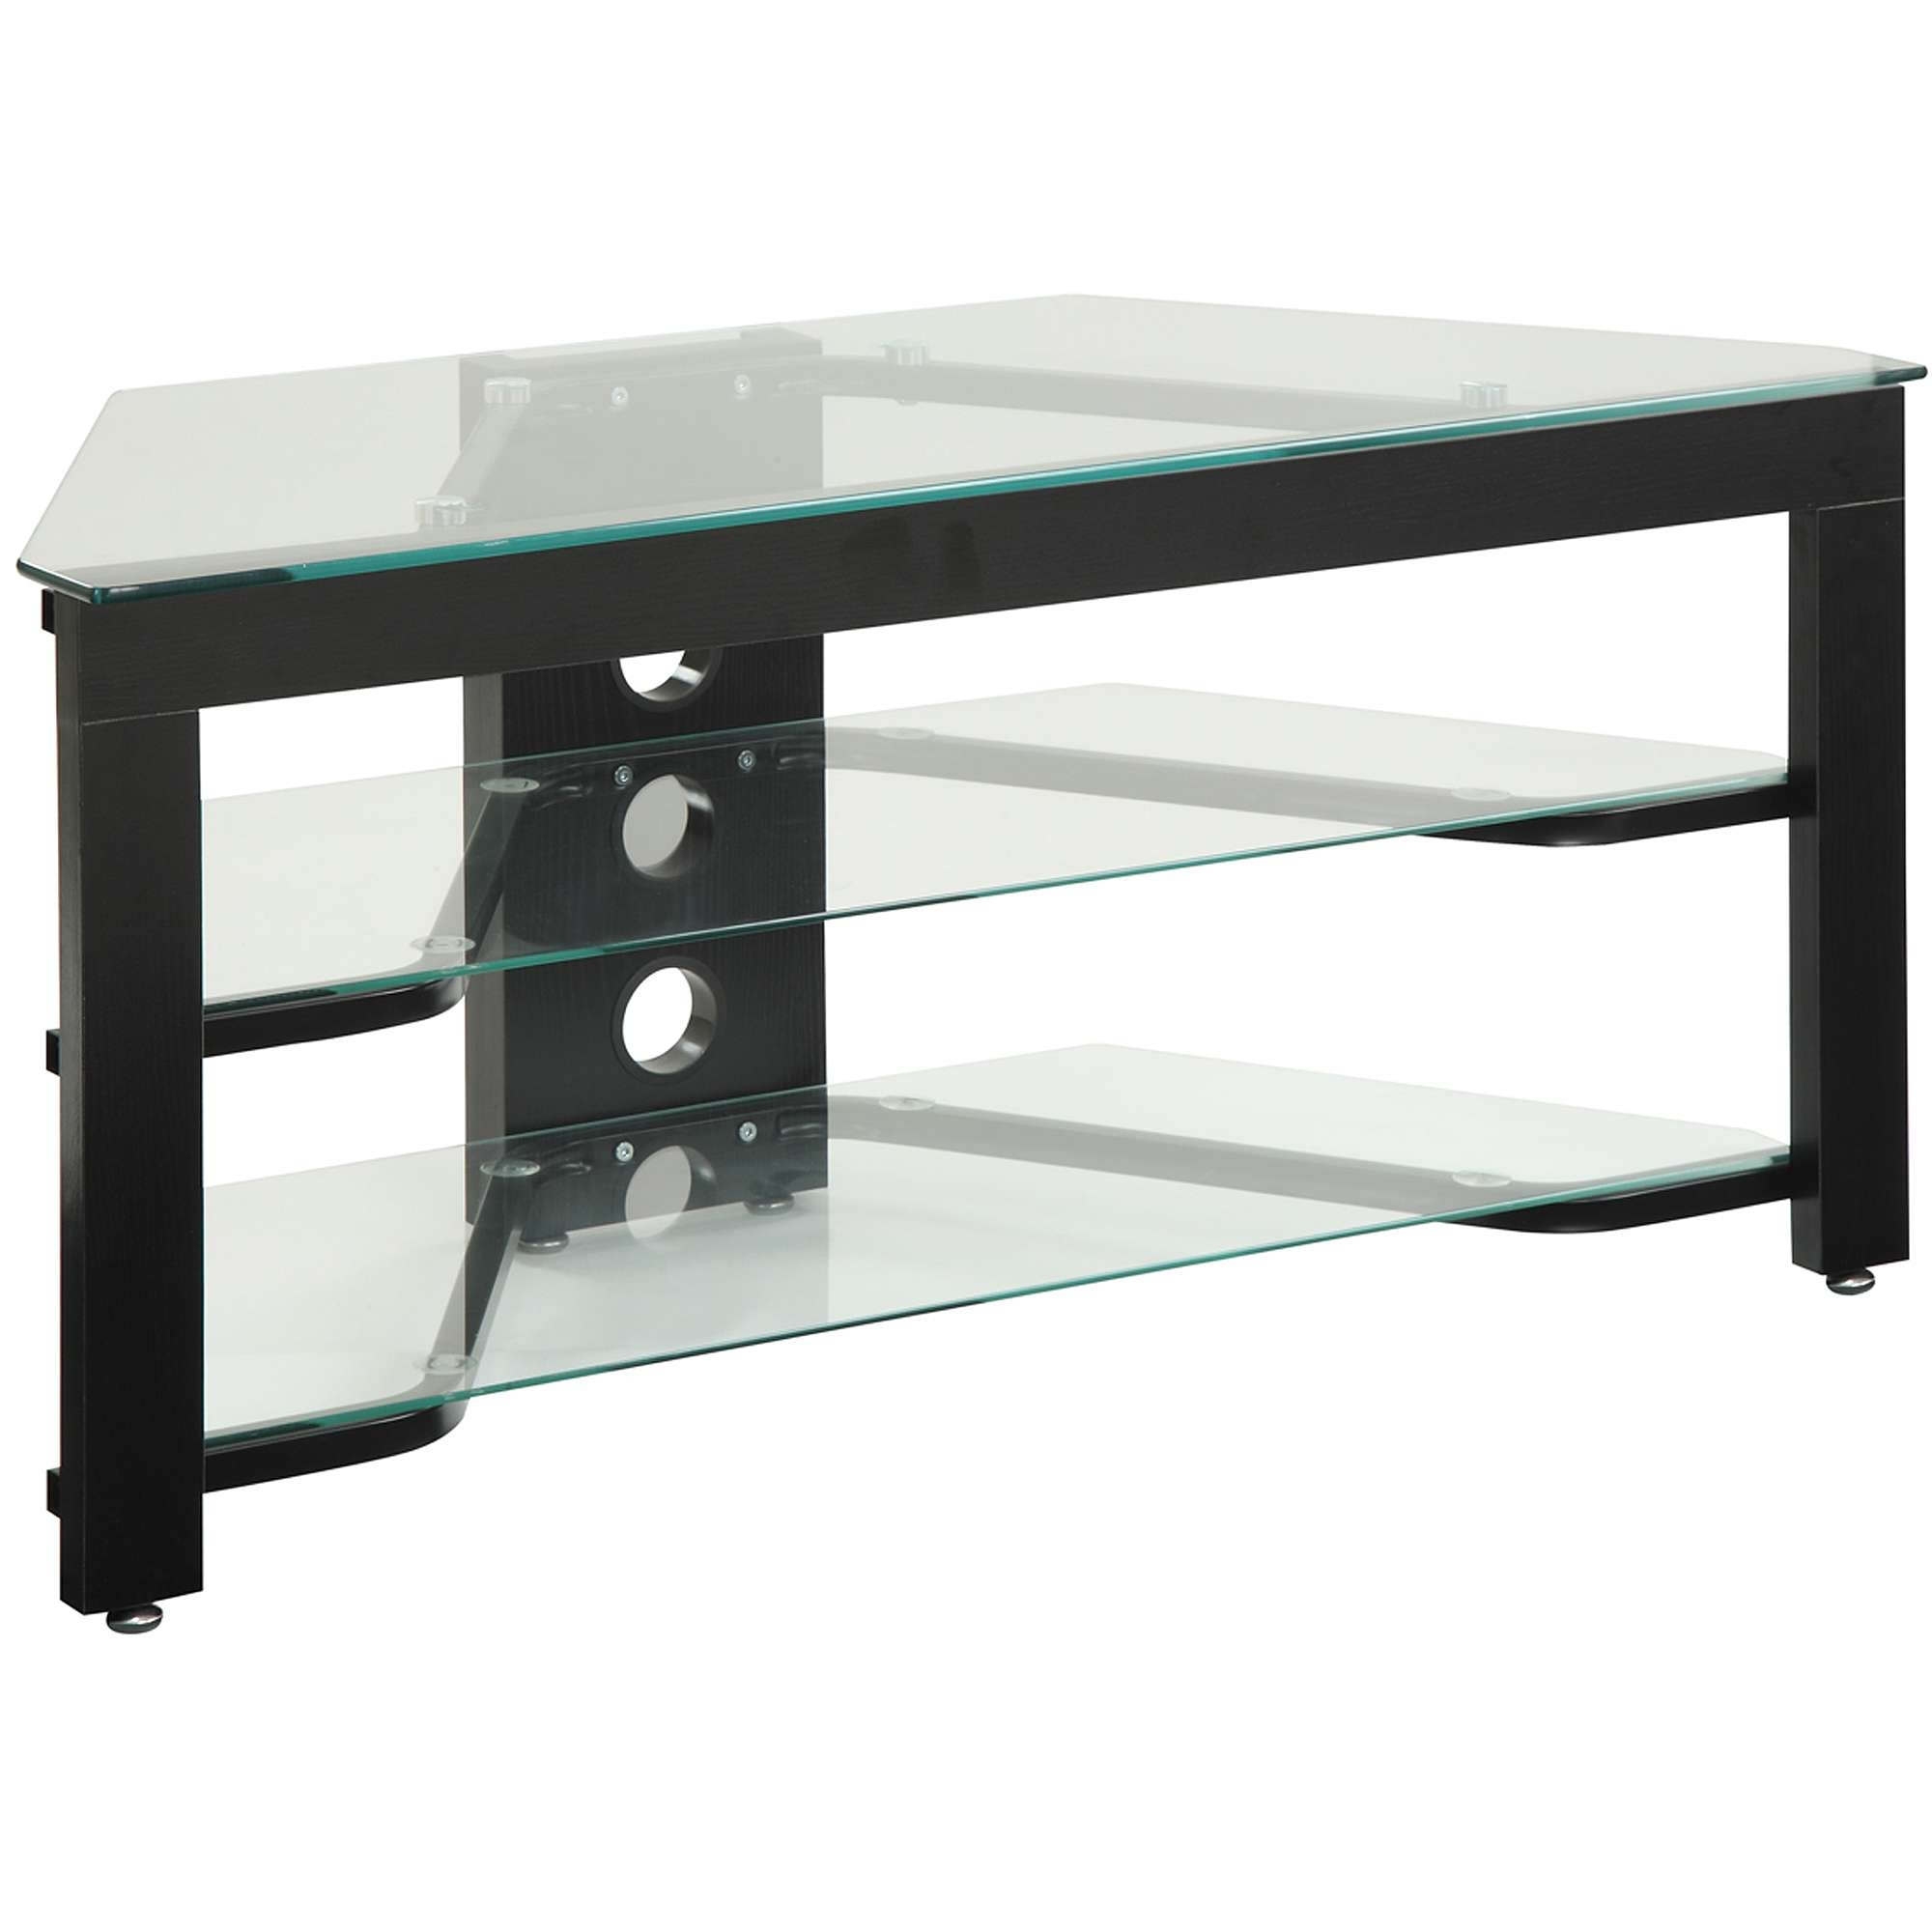 Convenience Concepts Designs2go Wood And Glass Tv Stand For Tvs Up Throughout Wood Tv Stands With Glass (View 9 of 15)